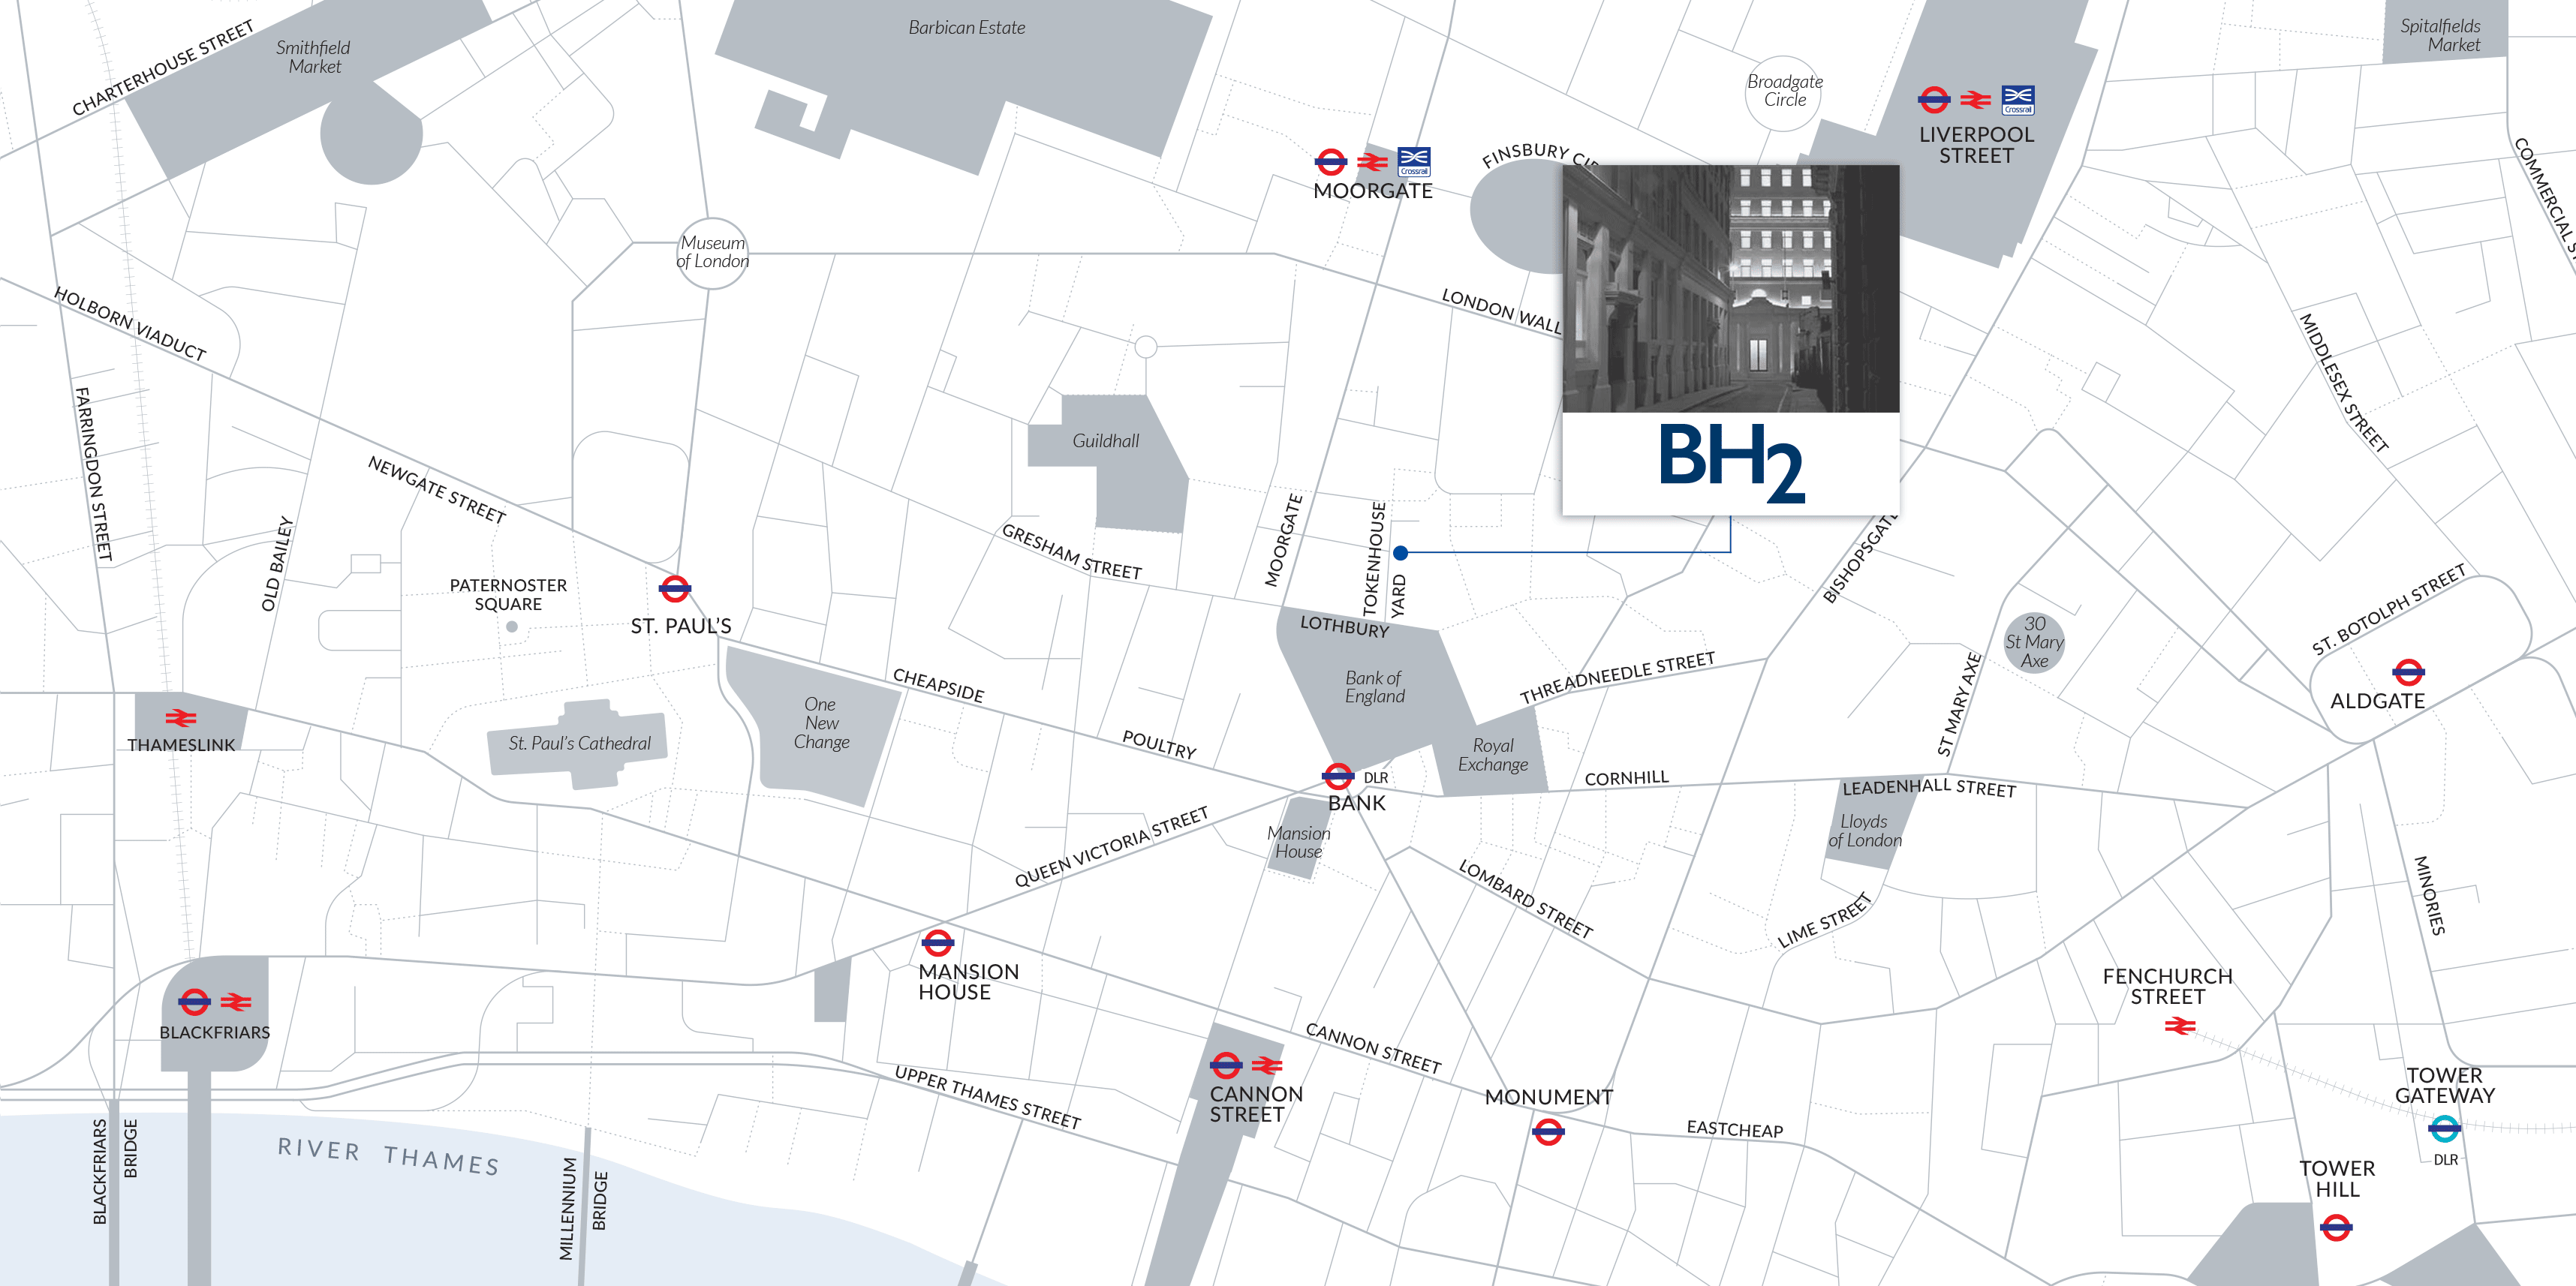 Map of BH2's location